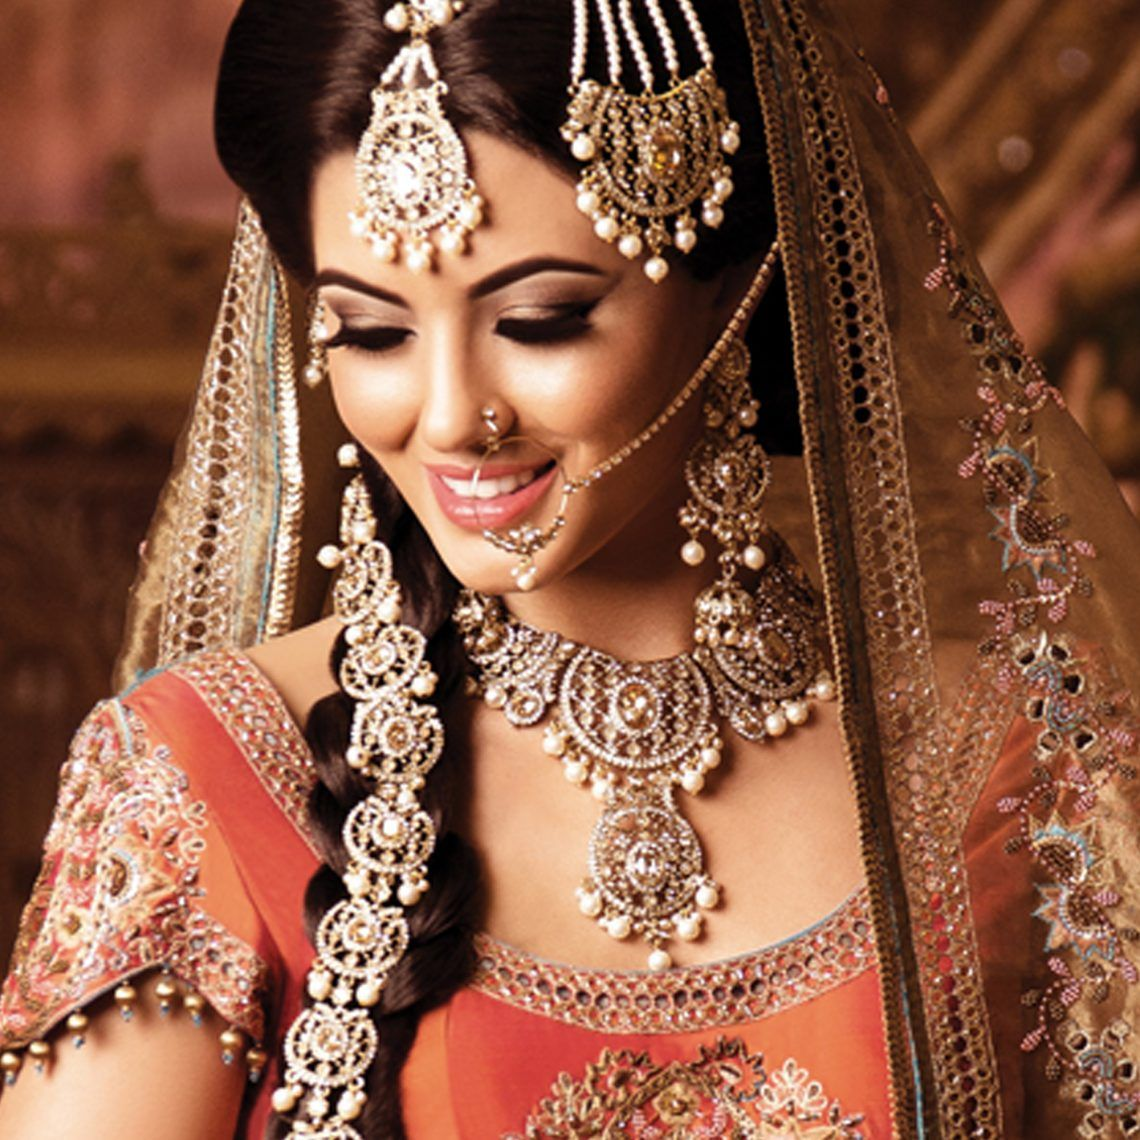 How to learn traditional bridal makeup with ease in Mumbai